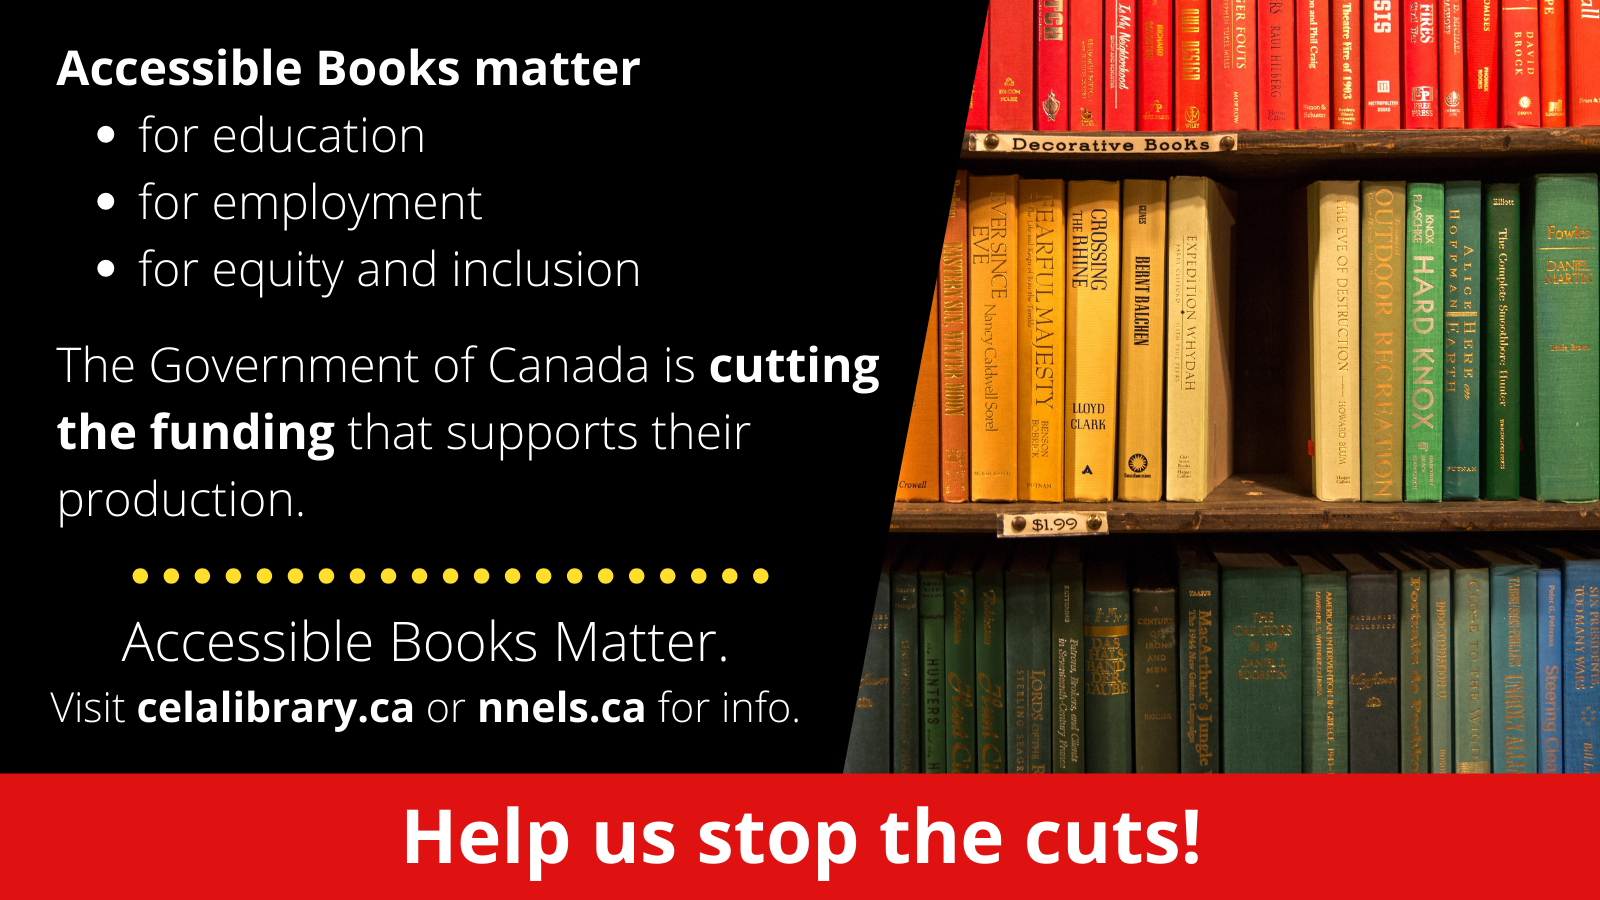 The graphic is cut in half. On the right is an image of 3 shelves of books. At the center of the middle shelf a book is missing creating a black hole. On the left is the following text: Accessible Books Matter for education, for employment, for equity and inclusion. And the Government of Canada is cutting the funding that supports their production. Accessible Books Matter. Visit nnels.ca or celalibrary.ca for info. At the bottom in a red bar is white text which reads Help us stop the cuts!